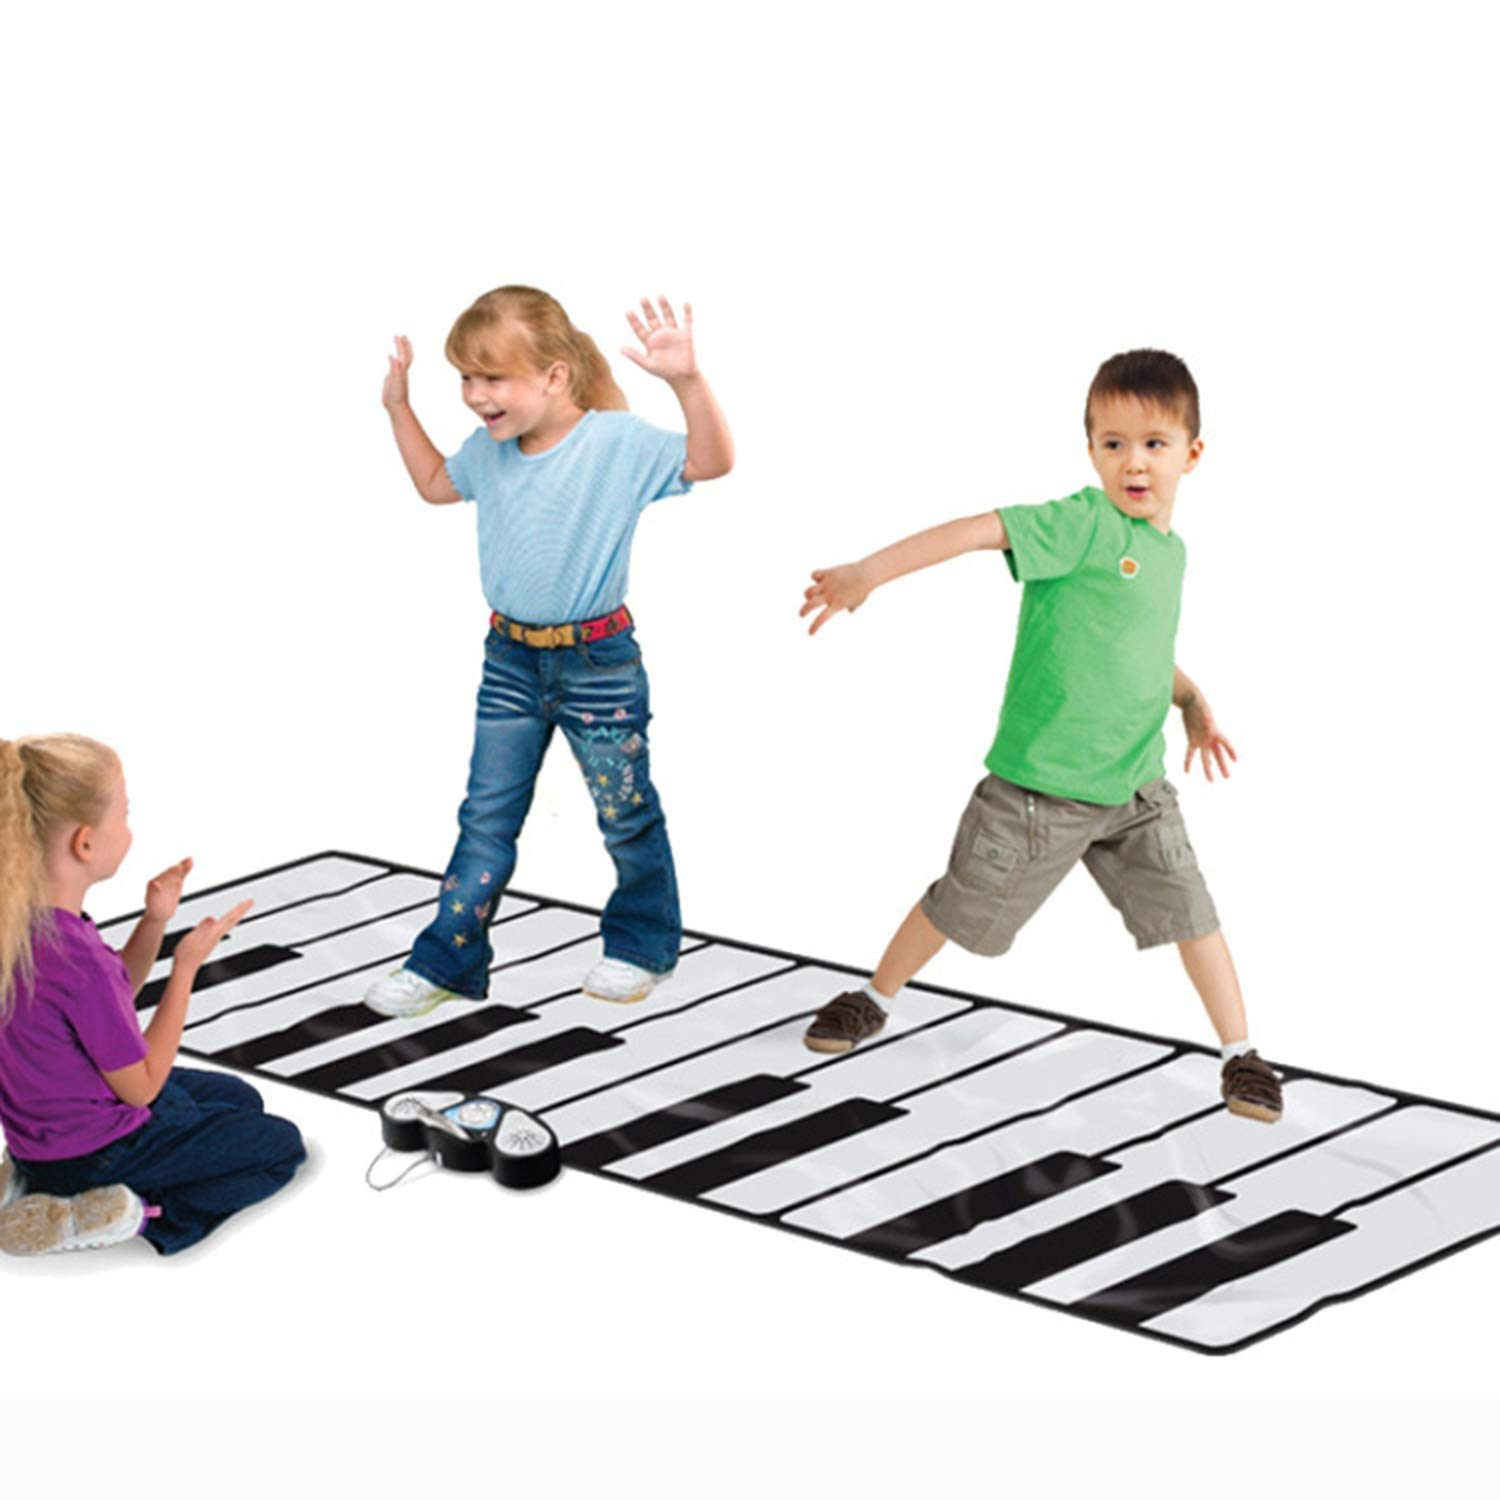 YFQ Children's Early Education Music Mat Crawling Mat Large Pedal Electronic Piano Crawling Blanket Game Pad Early Education Toy Educational Toys by YFQ (Image #1)